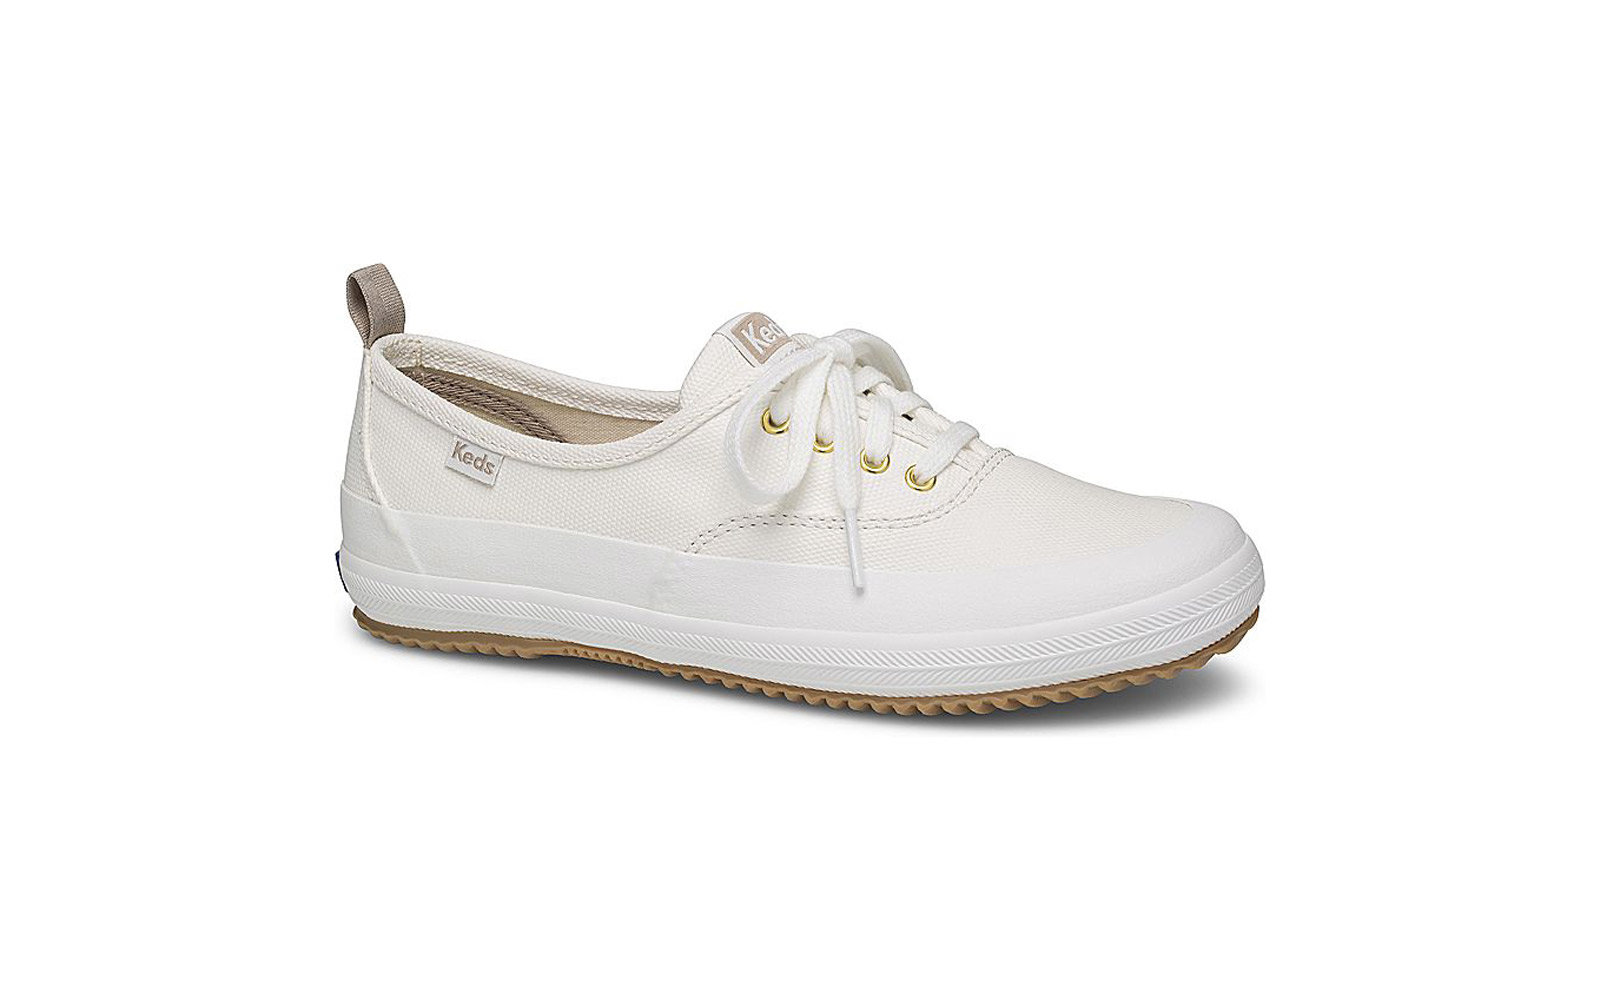 115db93a8bd5 17 White Sneakers for Women That Go With Everything